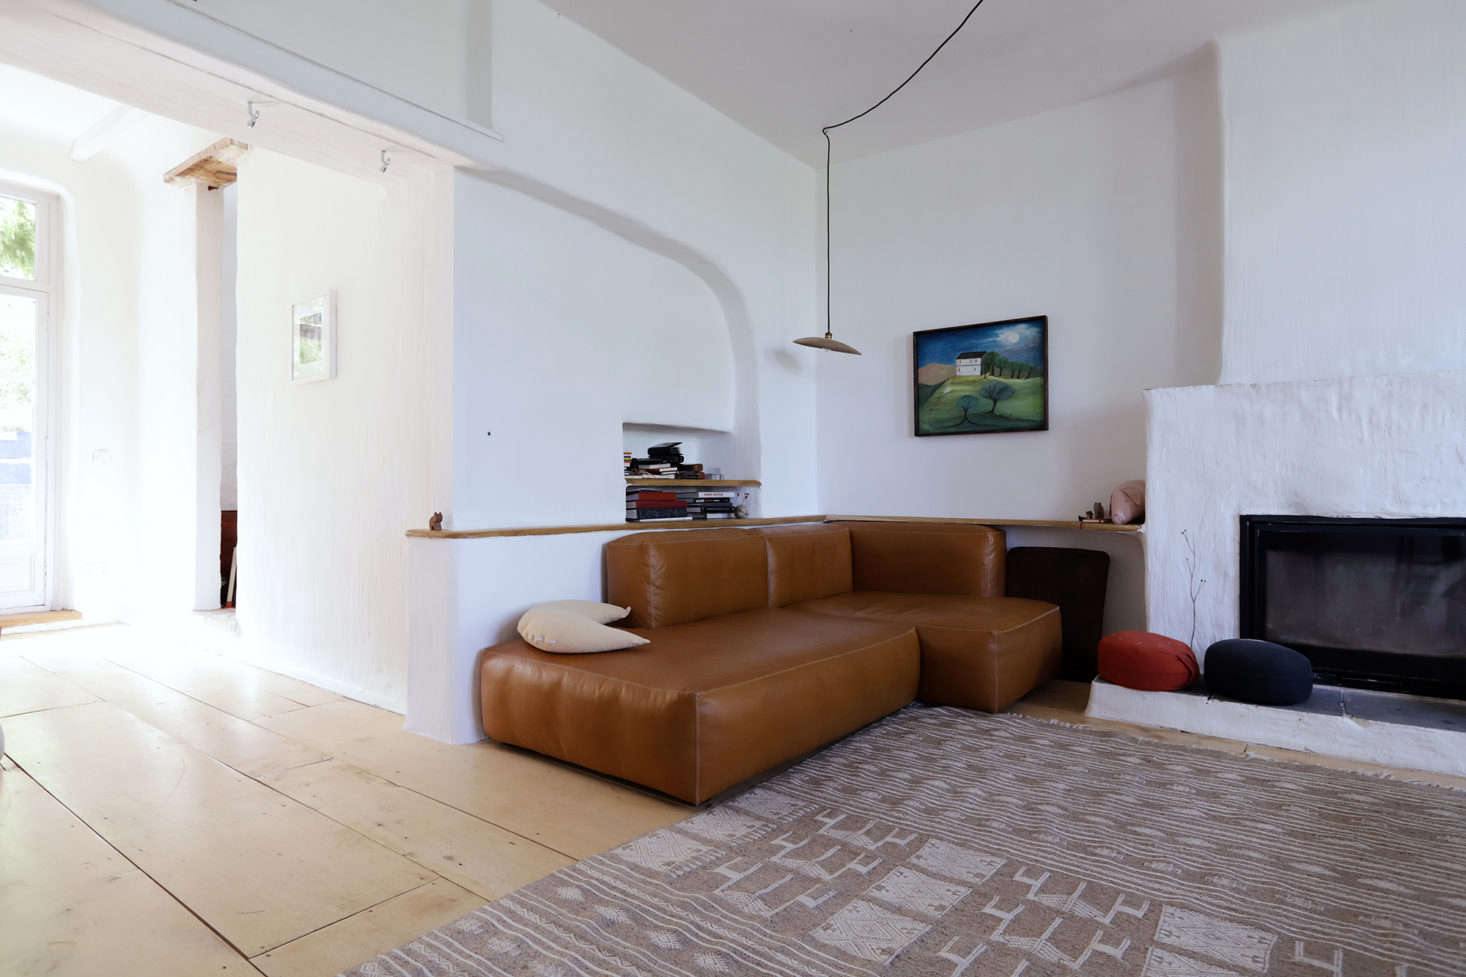 The sofa is a Hay Mags 3-Seater Sofa in leather and the rug is a gift from Valentin's mother, who works in Africa. The floors are made of hand-polished poplar.